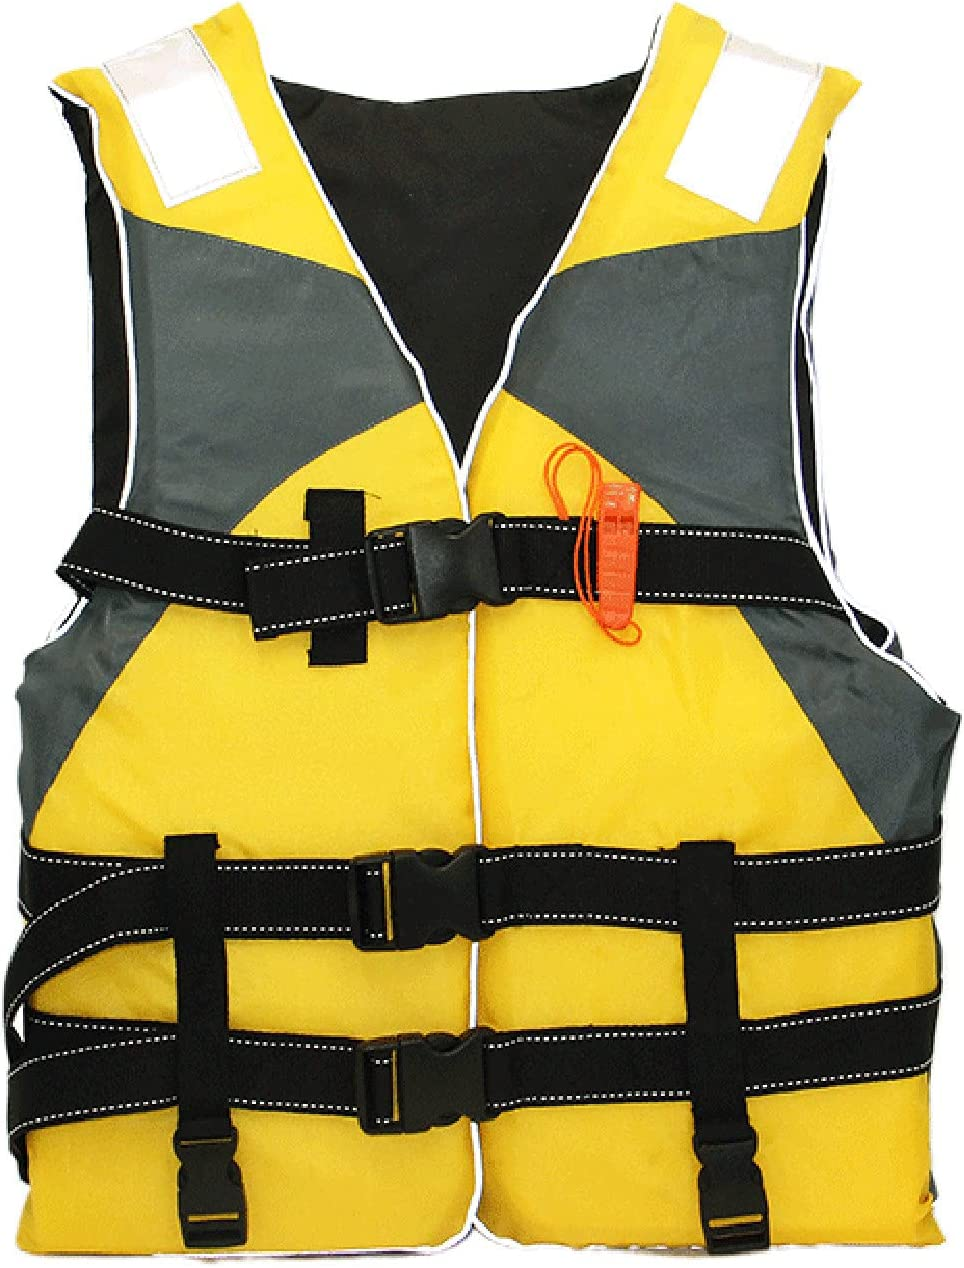 MAICC Lifevest for Attention brand Super beauty product restock quality top! Adult Equipment Swimming Sailing Outdoor